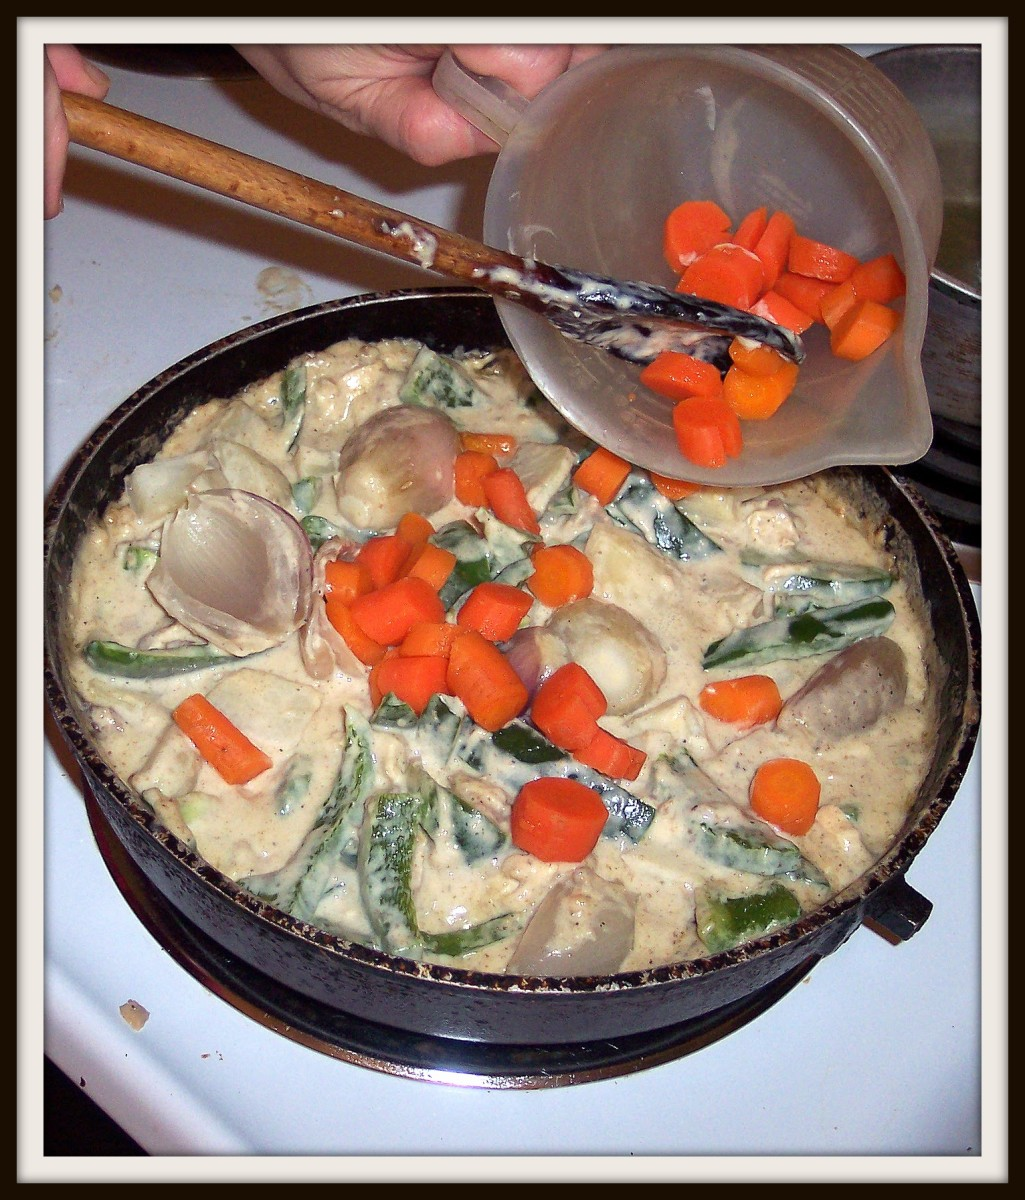 Starting with the chicken, followed by the veggies, stir in the filling.